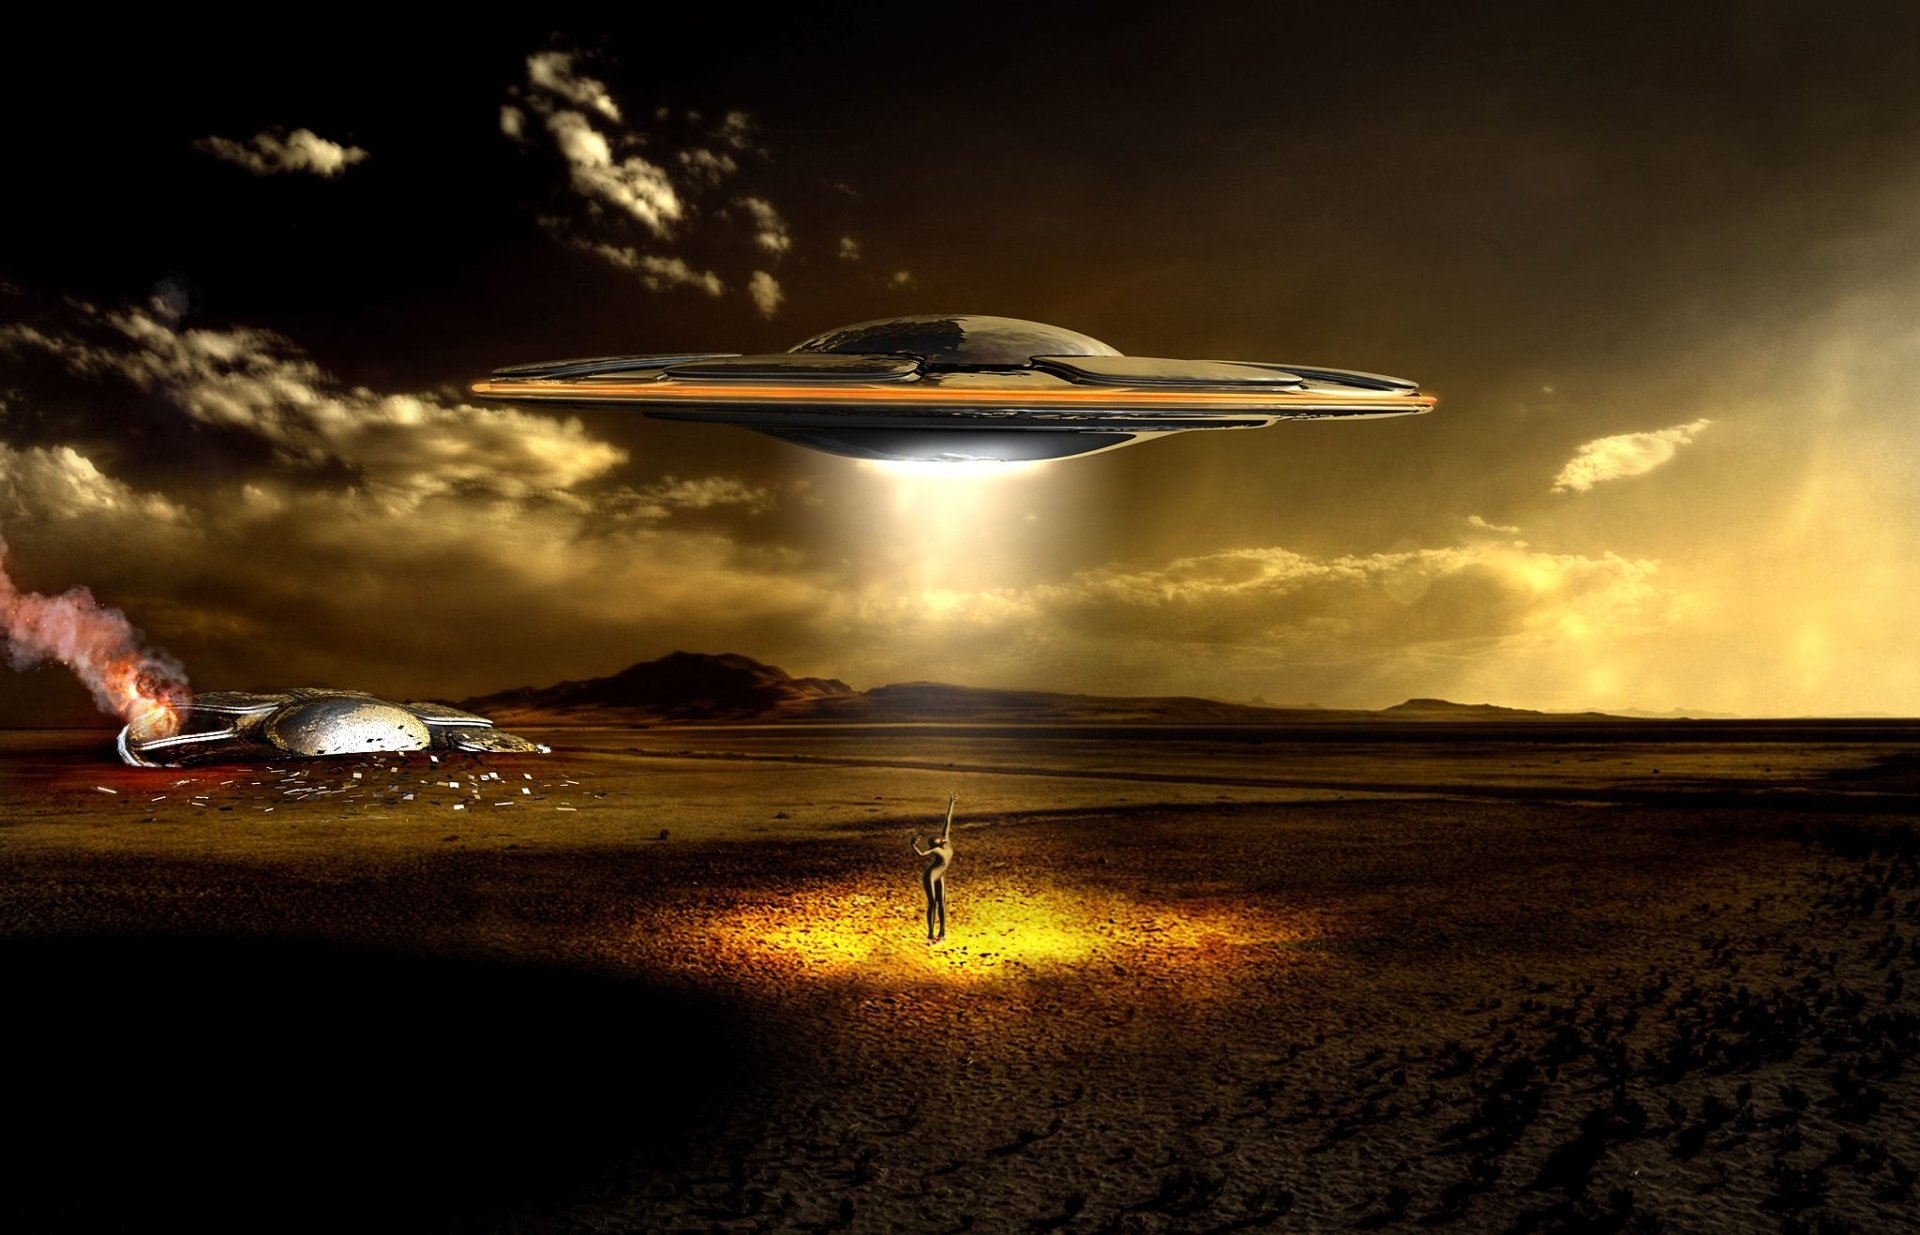 UFOs and Aliends Evidence in Ancient Art  Fine ArtTips  Fine ArtTips Loading Unsubscribe from Fine ArtTips Cancel Unsubscribe Working Subscribe Subscribed Unsubscribe 964K